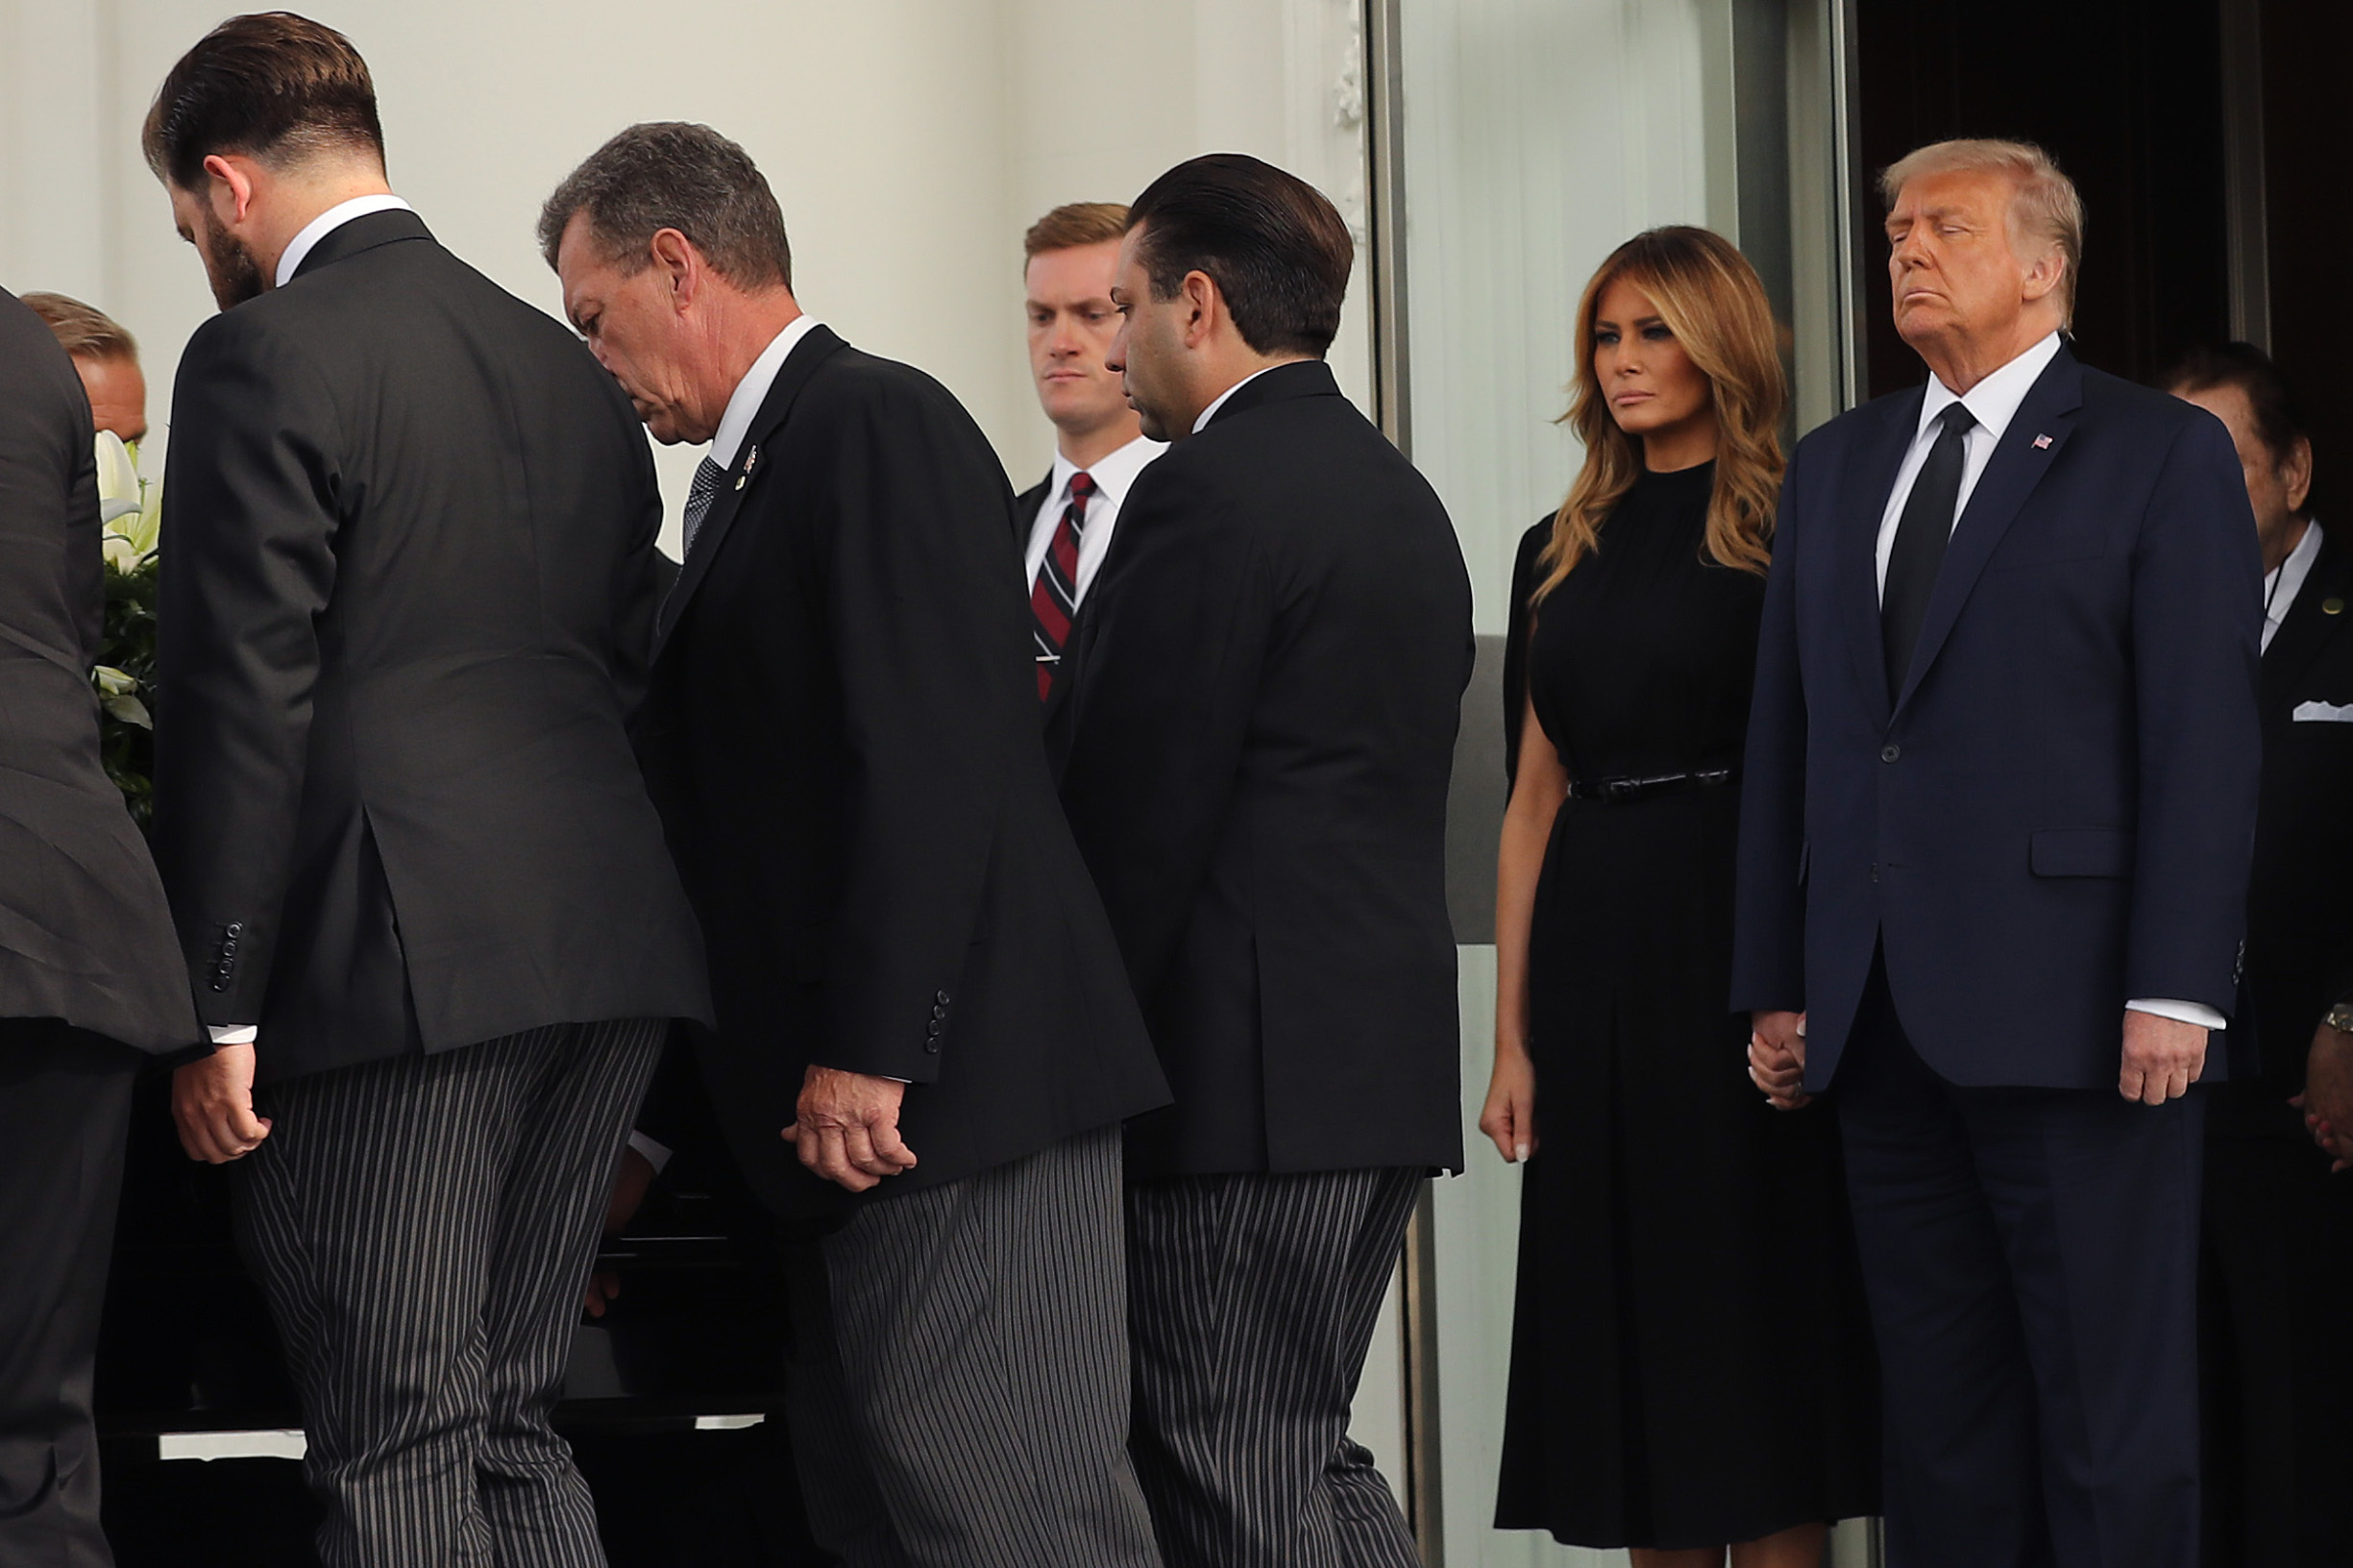 """WASHINGTON, DC - AUGUST 21: U.S. President Donald Trump (R) and First Lady Melania Trump follow his brother Robert Trump's casket out of the White House following his funeral service on August 21, 2020 in Washington, DC. Robert Trump passed away on August 15 at the age of 71. In a statement, President Trump wrote, """"He was not just my brother, he was my best friend."""